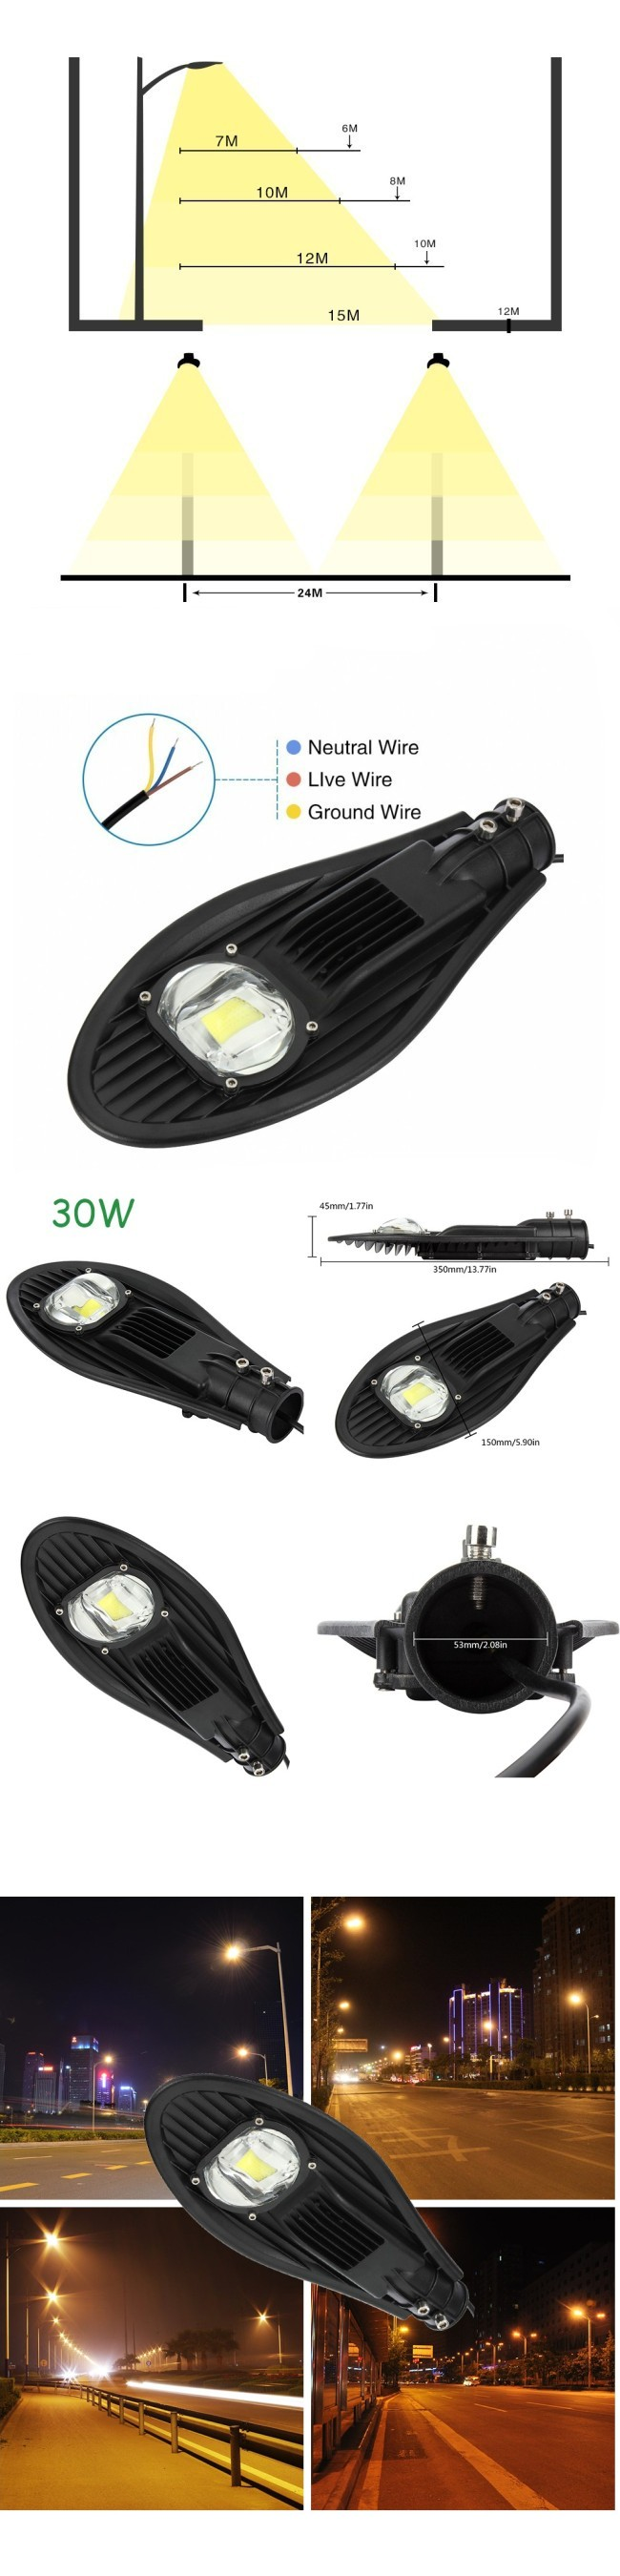 20W 30W 40W 50W 60W 80W 100W LED Street Light 60W Solar